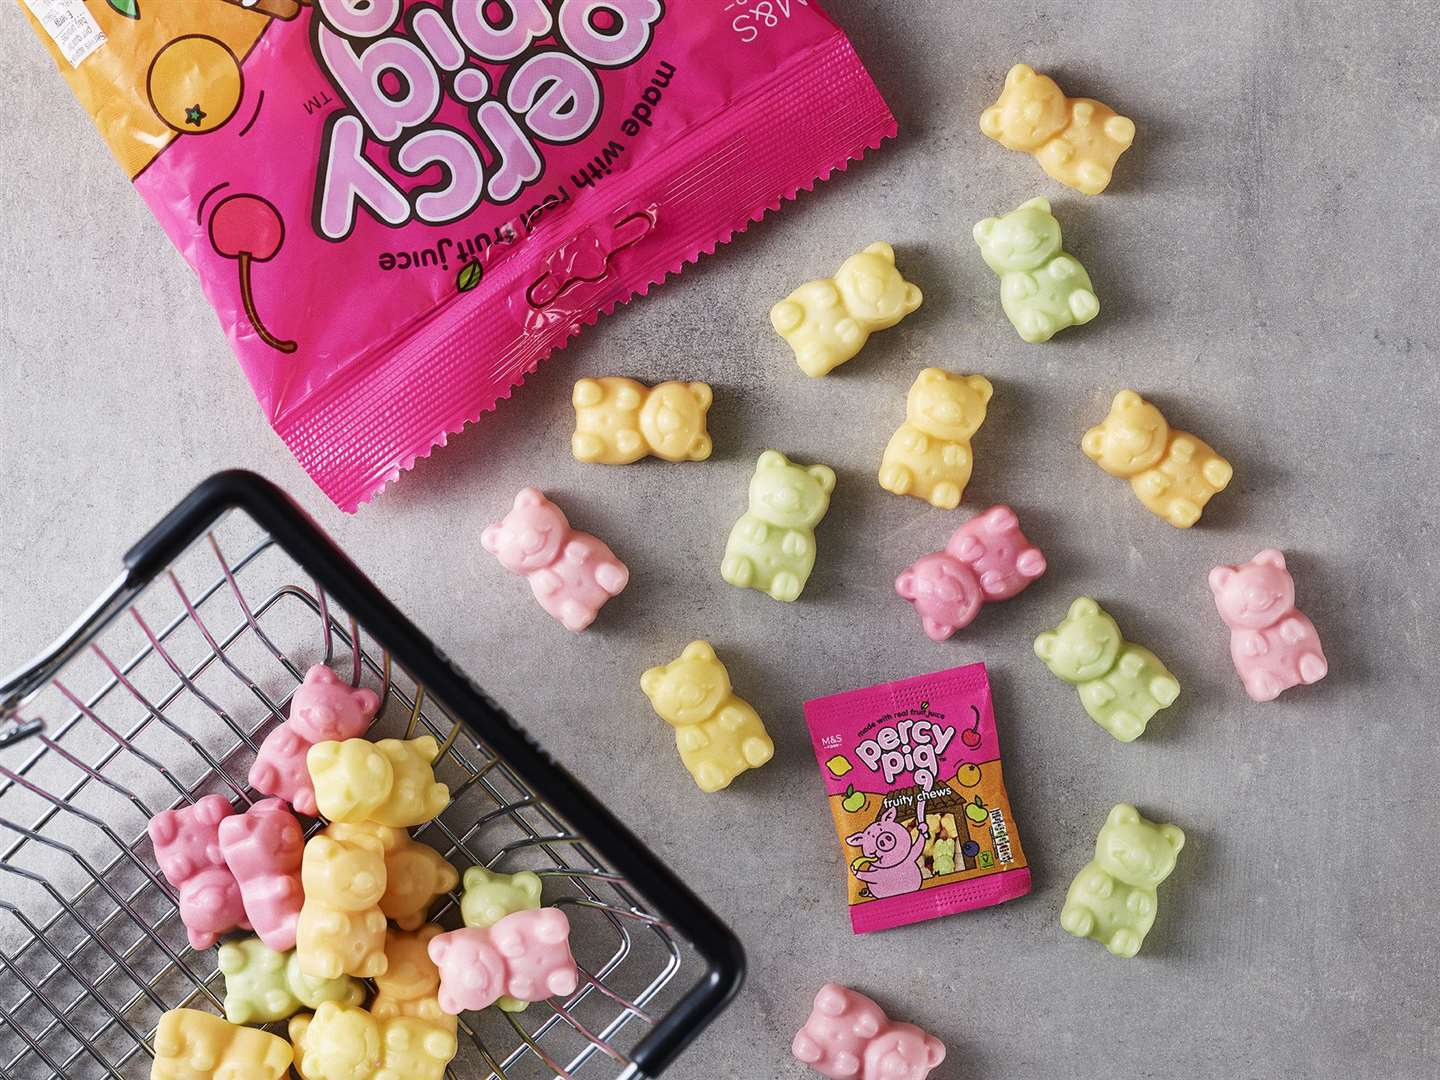 Grab your own pack of Percy Pigs to play with